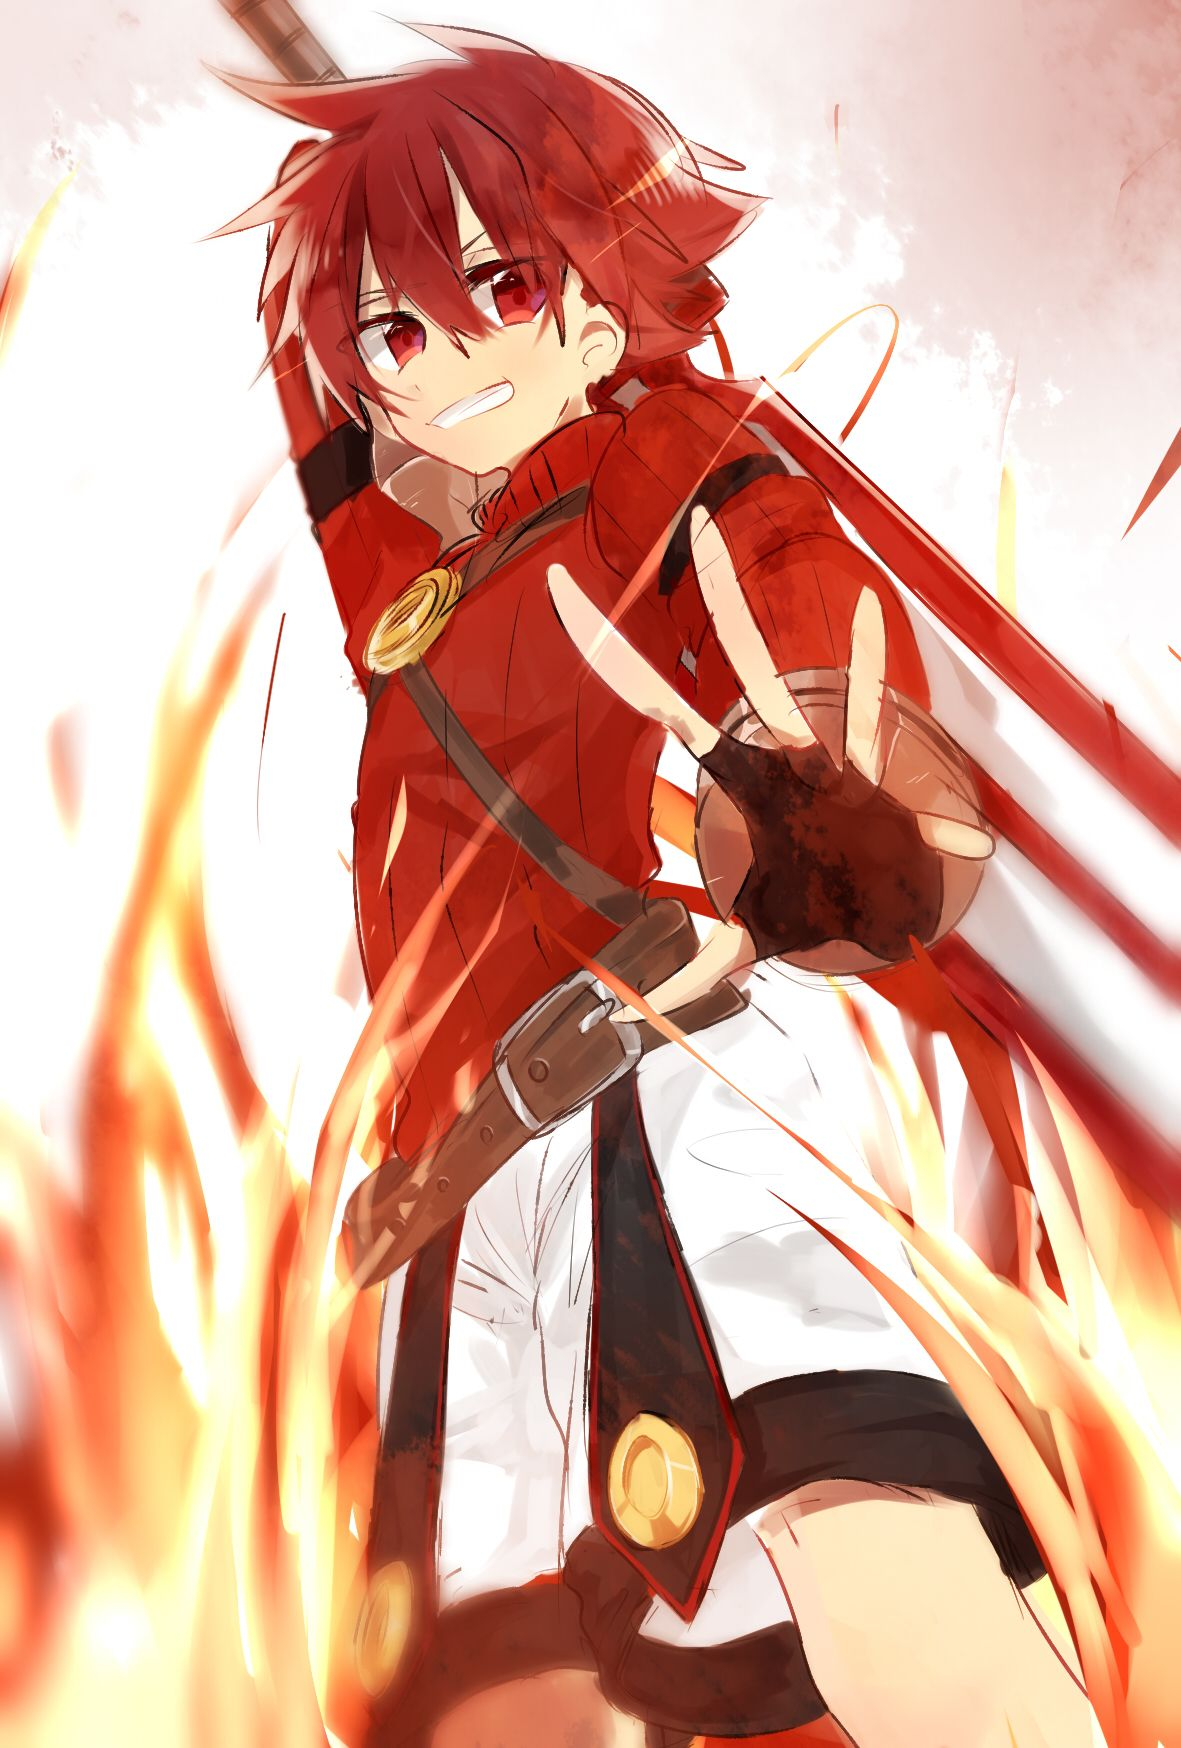 Pin by Abog Rubén on Elsword (Character) Elsword, Anime